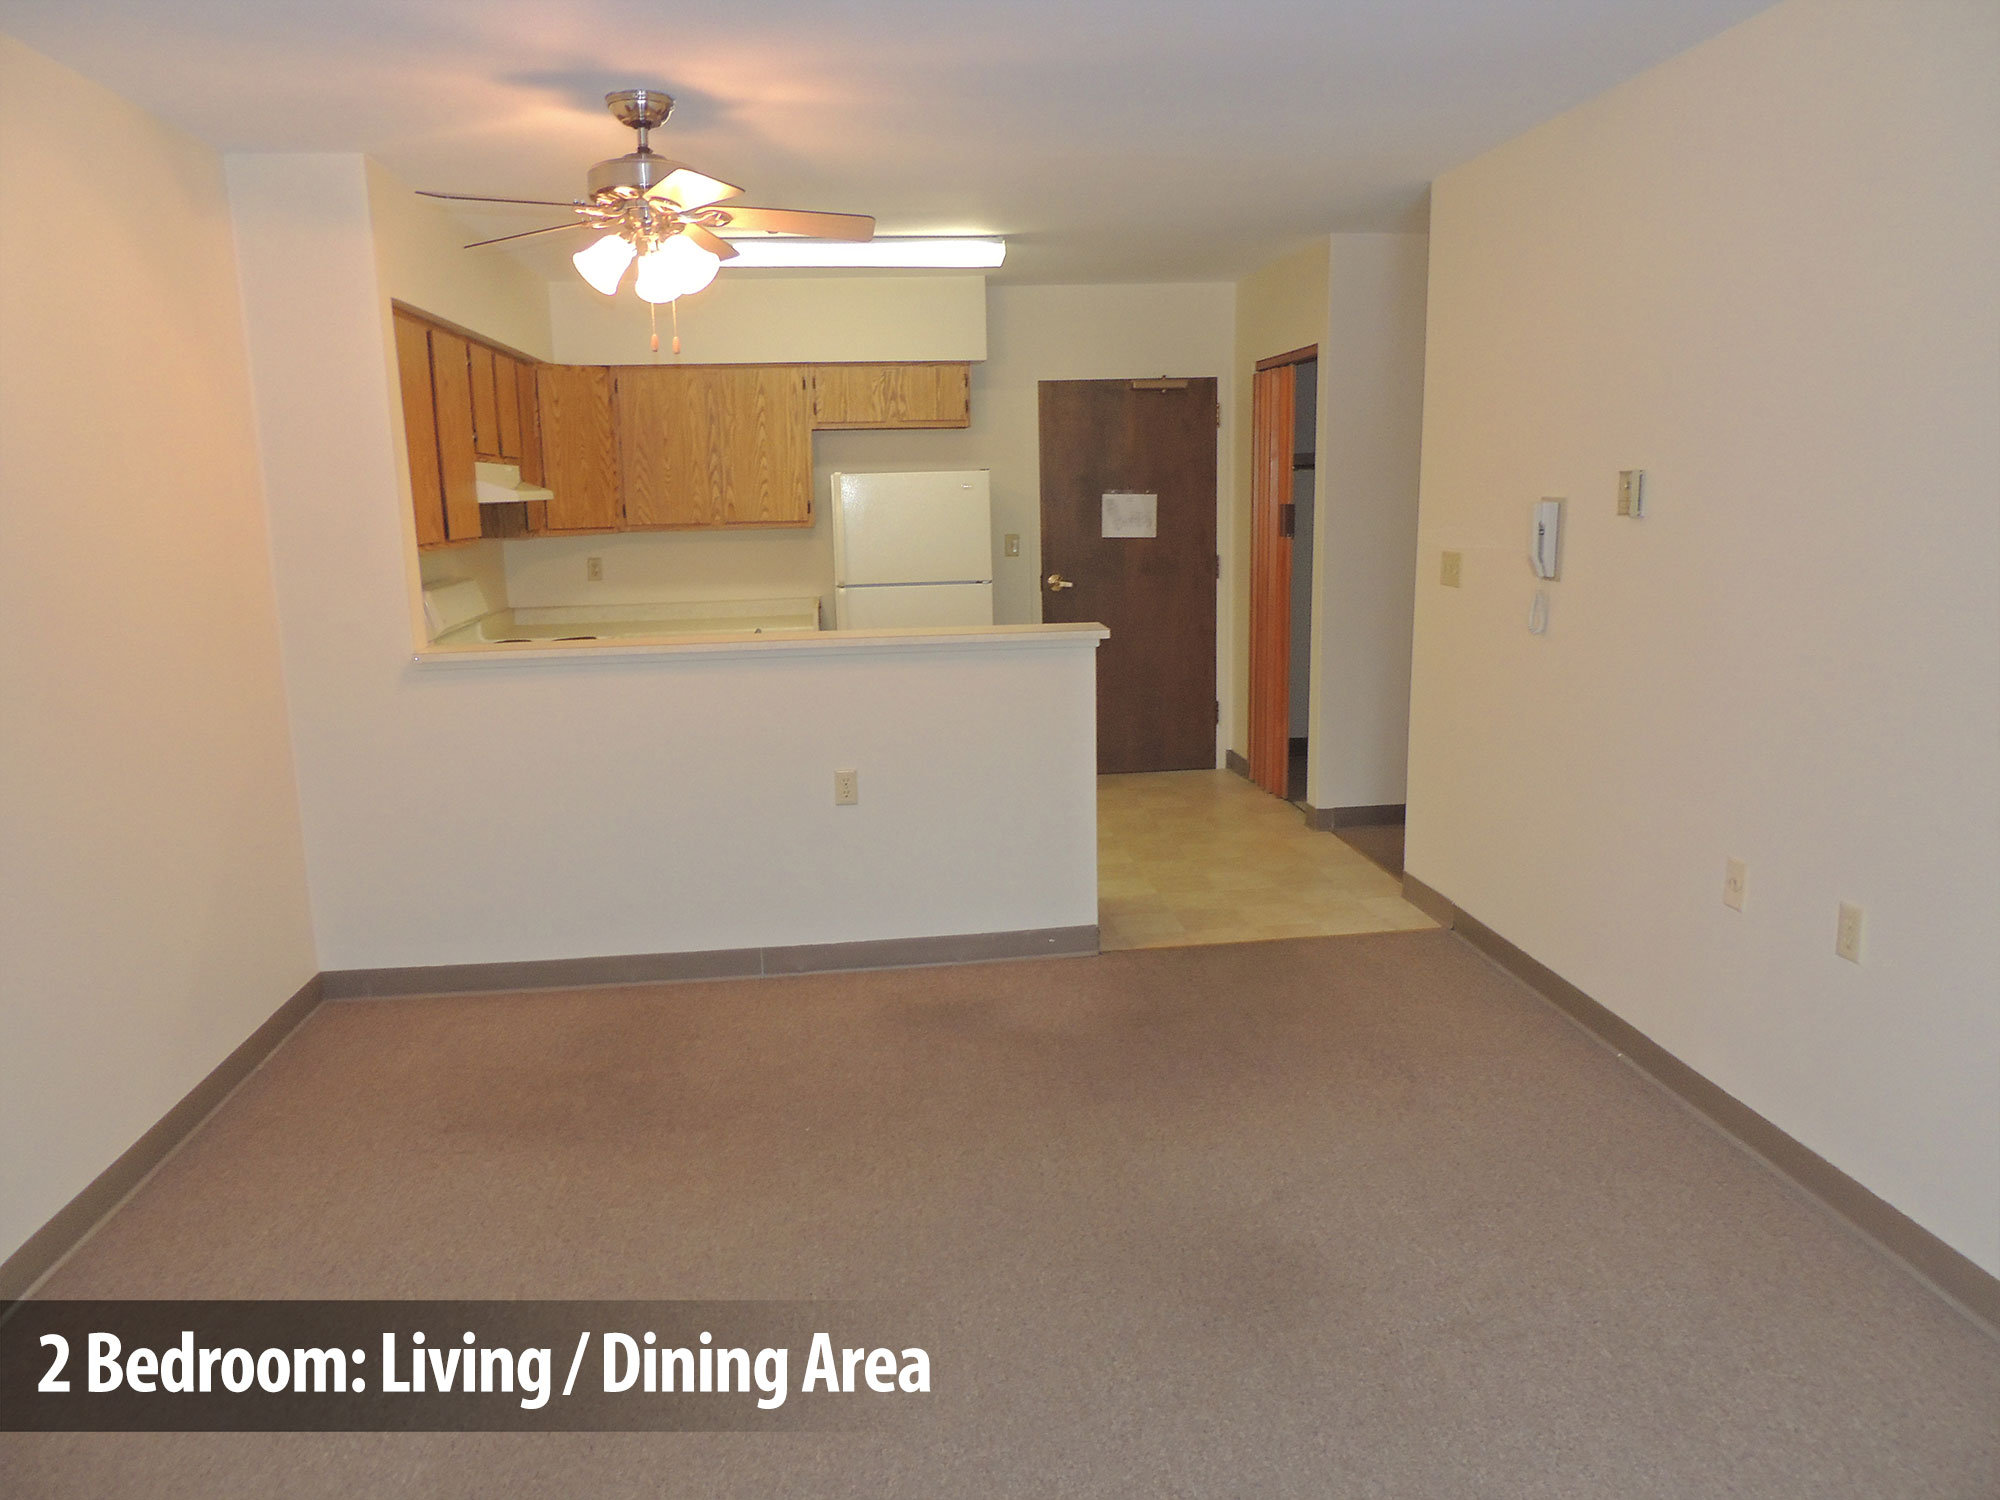 2br-living-dining2-2